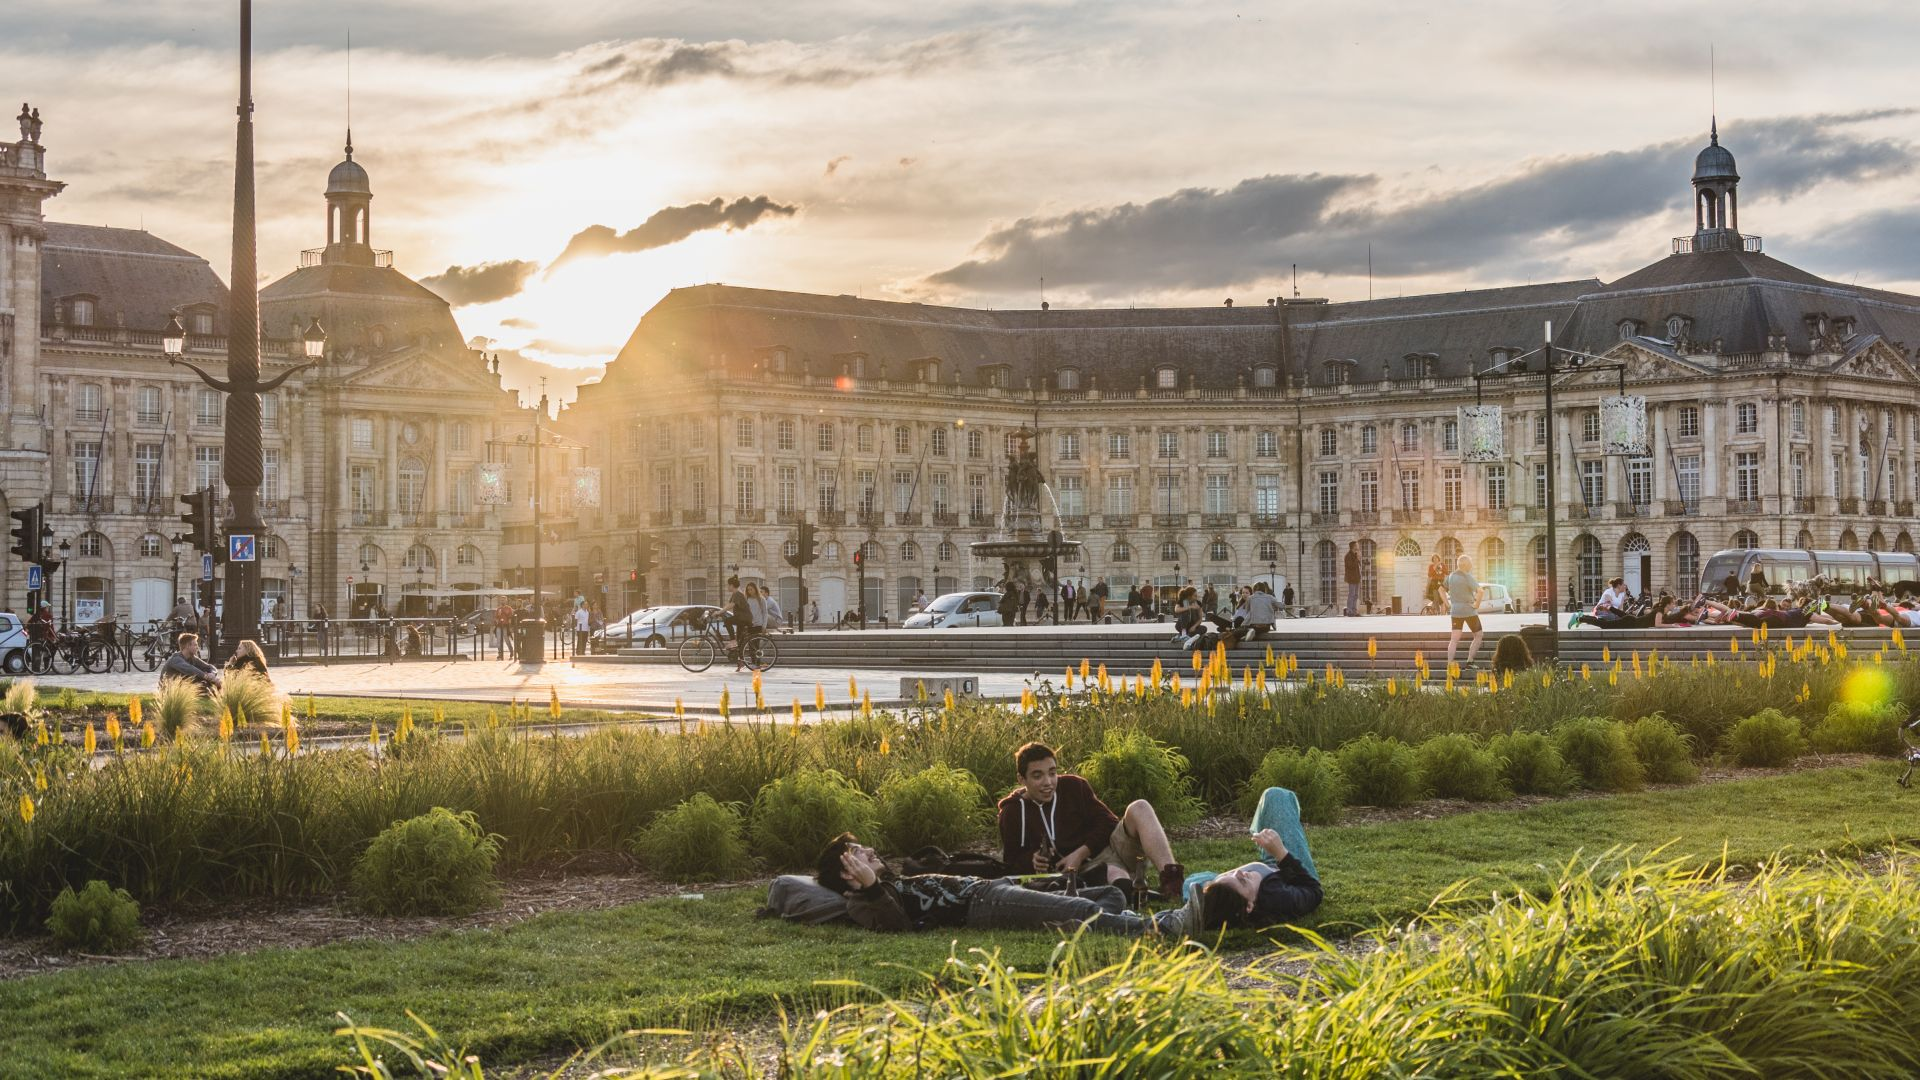 The scenic and historic Place de la Bourse in Bordeaux